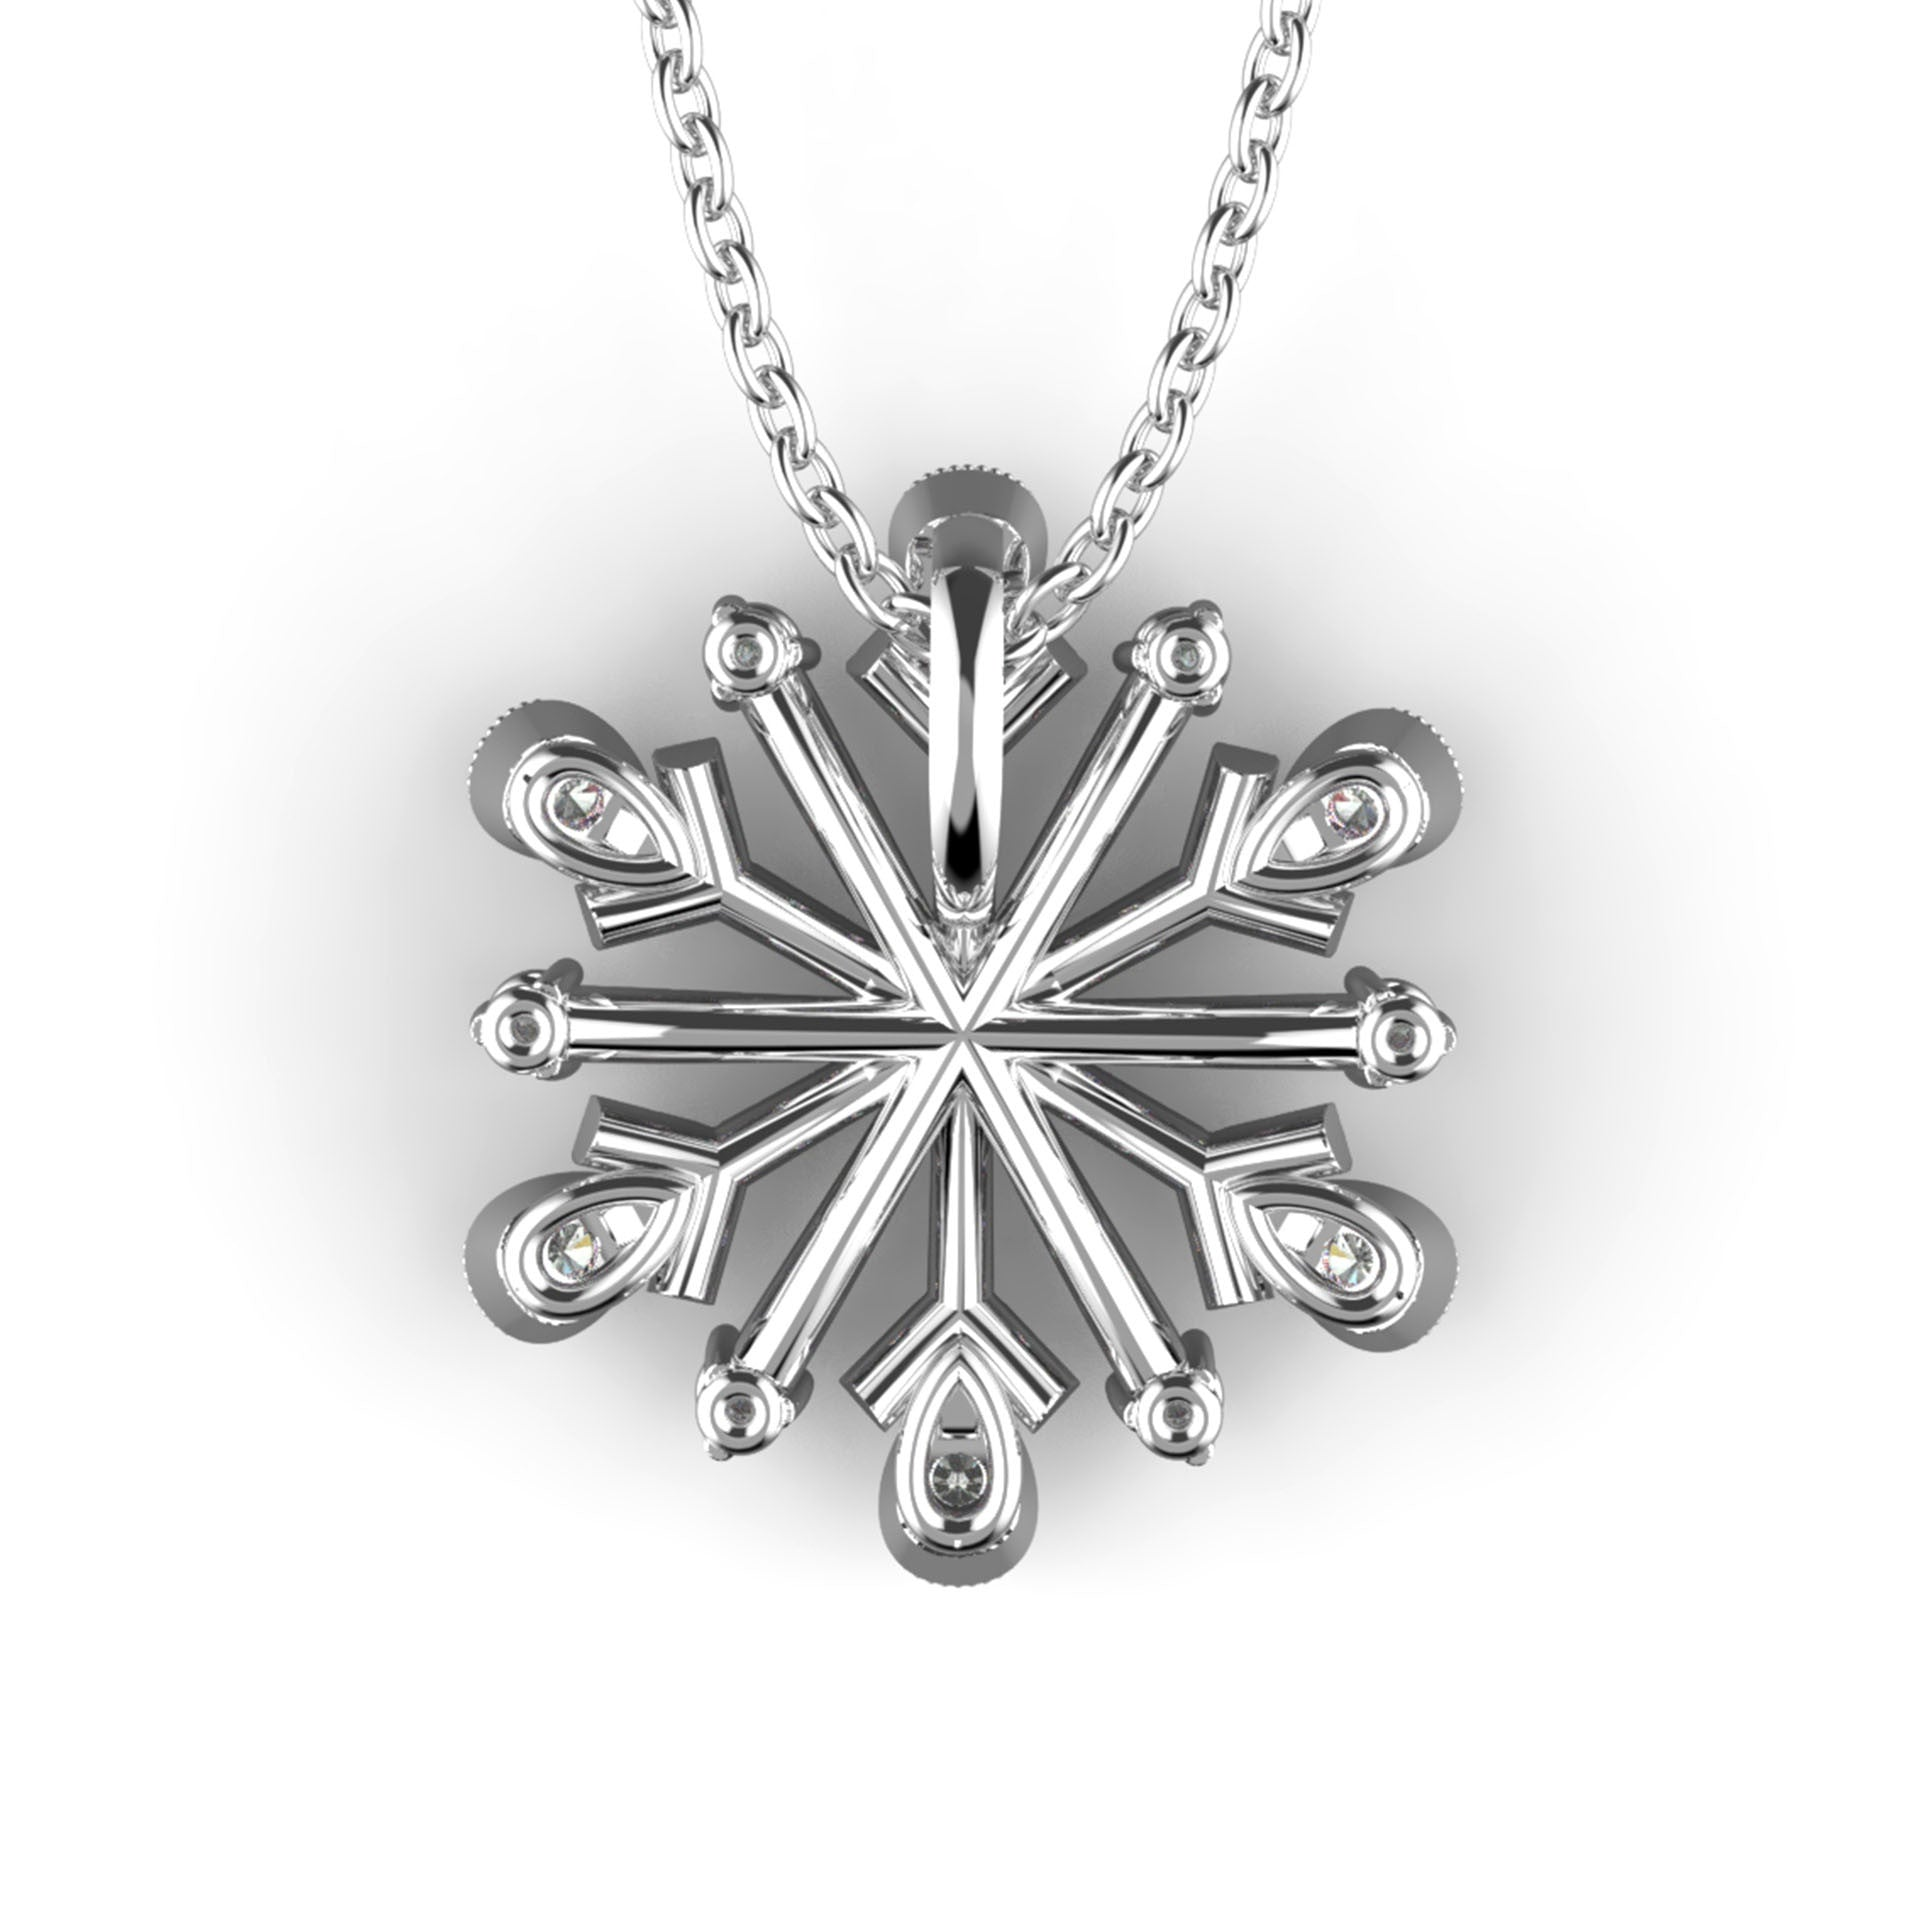 Clustered Snowflake Diamond Pendant - KARP Jewellery